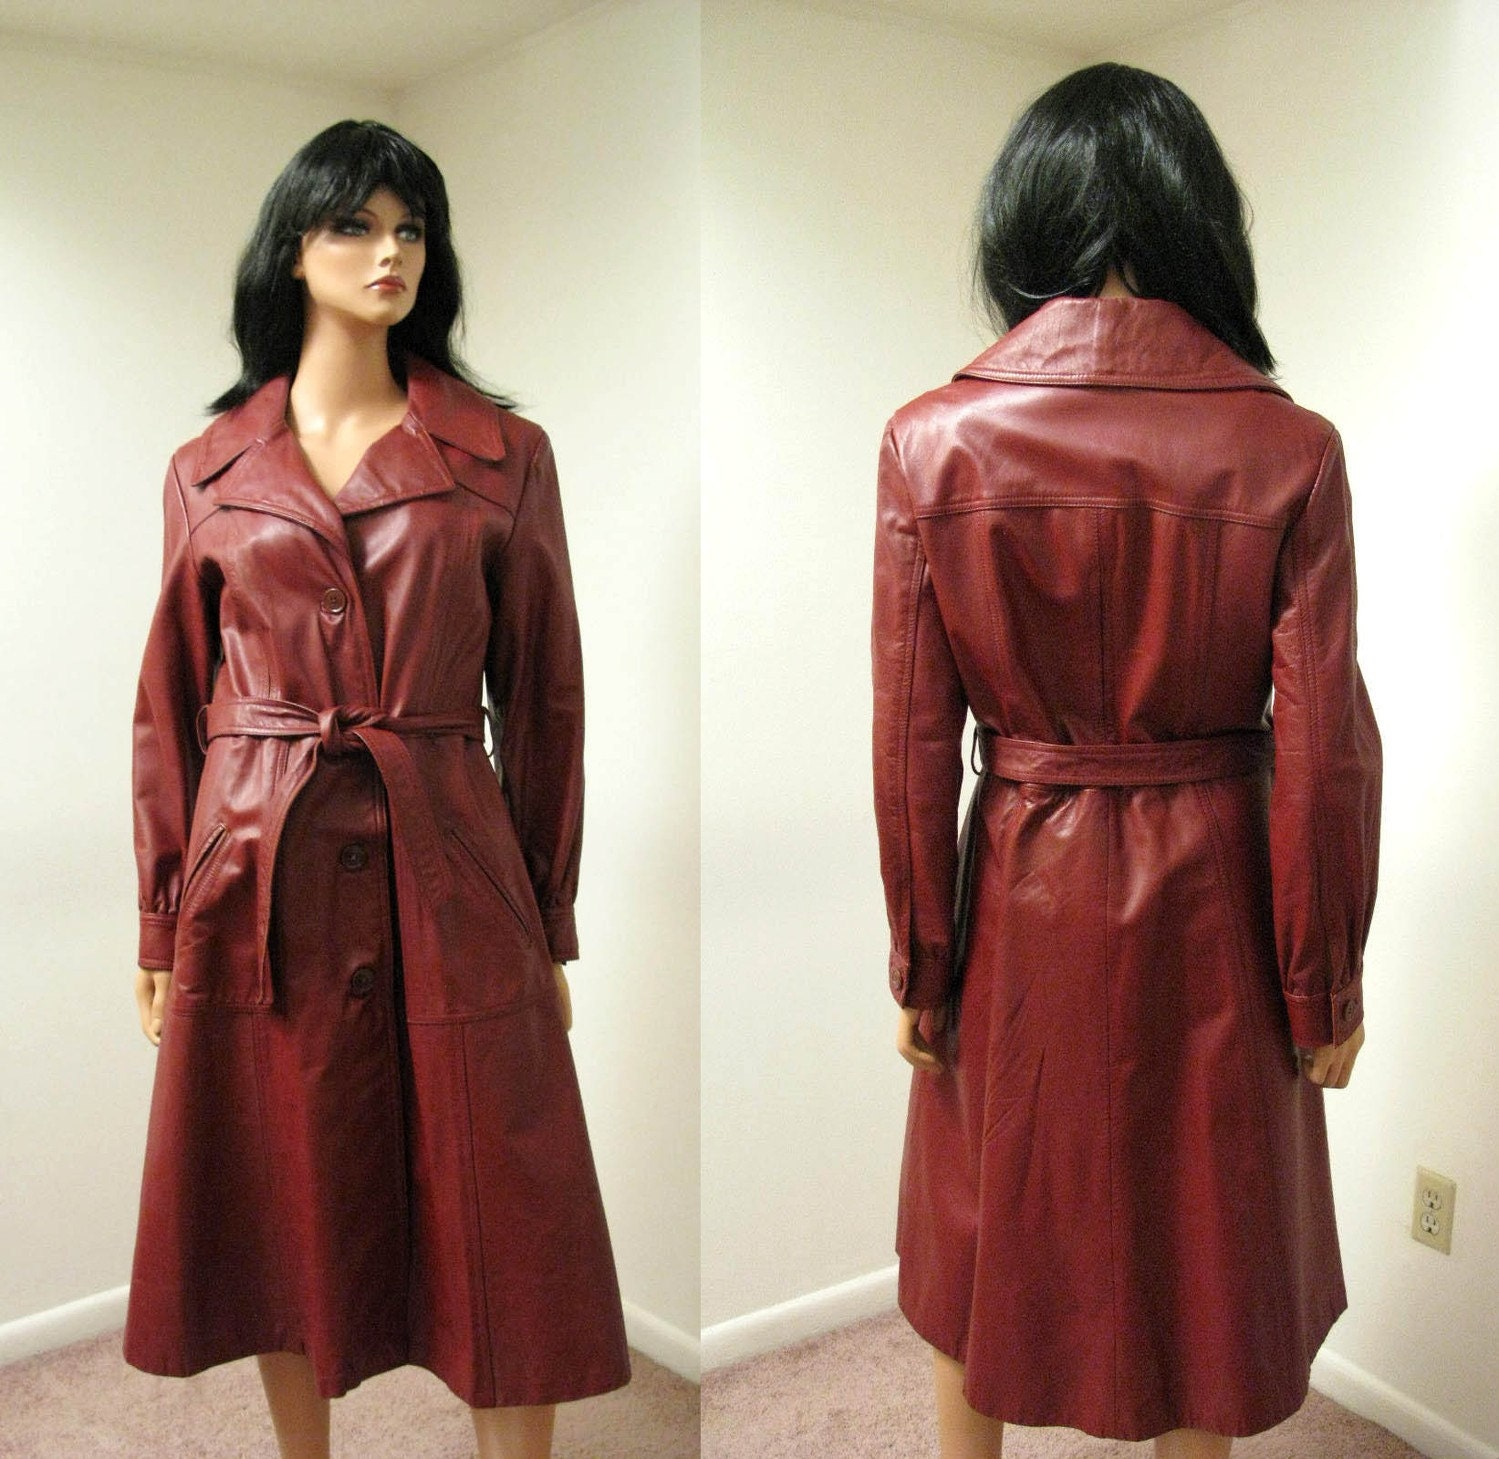 Long Leather Trench Coat - Vintage 70s Reddish Brown Leather Spy Girl Coat S M FREE US Shipping